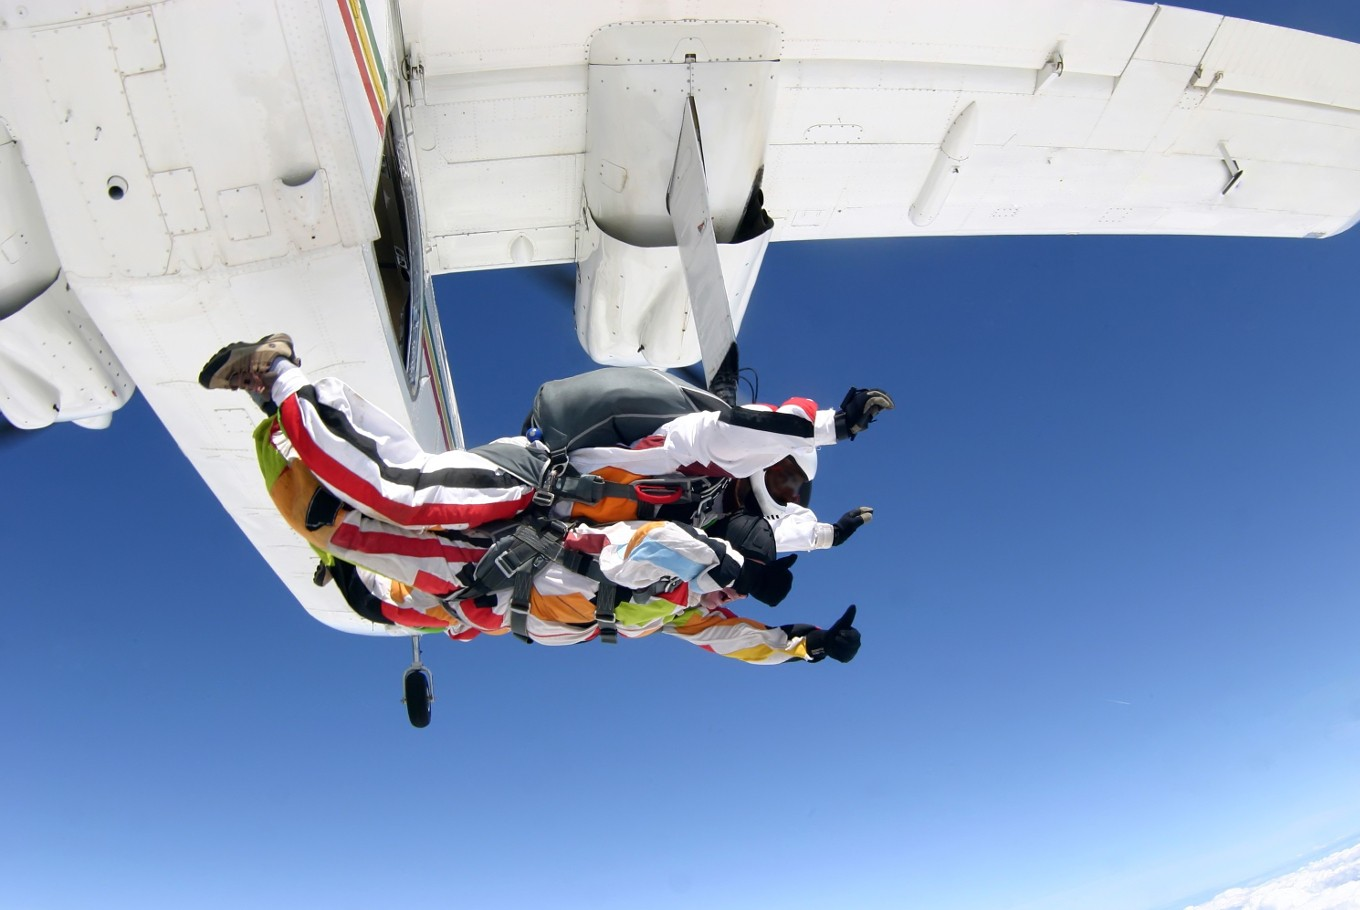 Passion for skydiving leads to Indonesian woman jumping in 46 countries